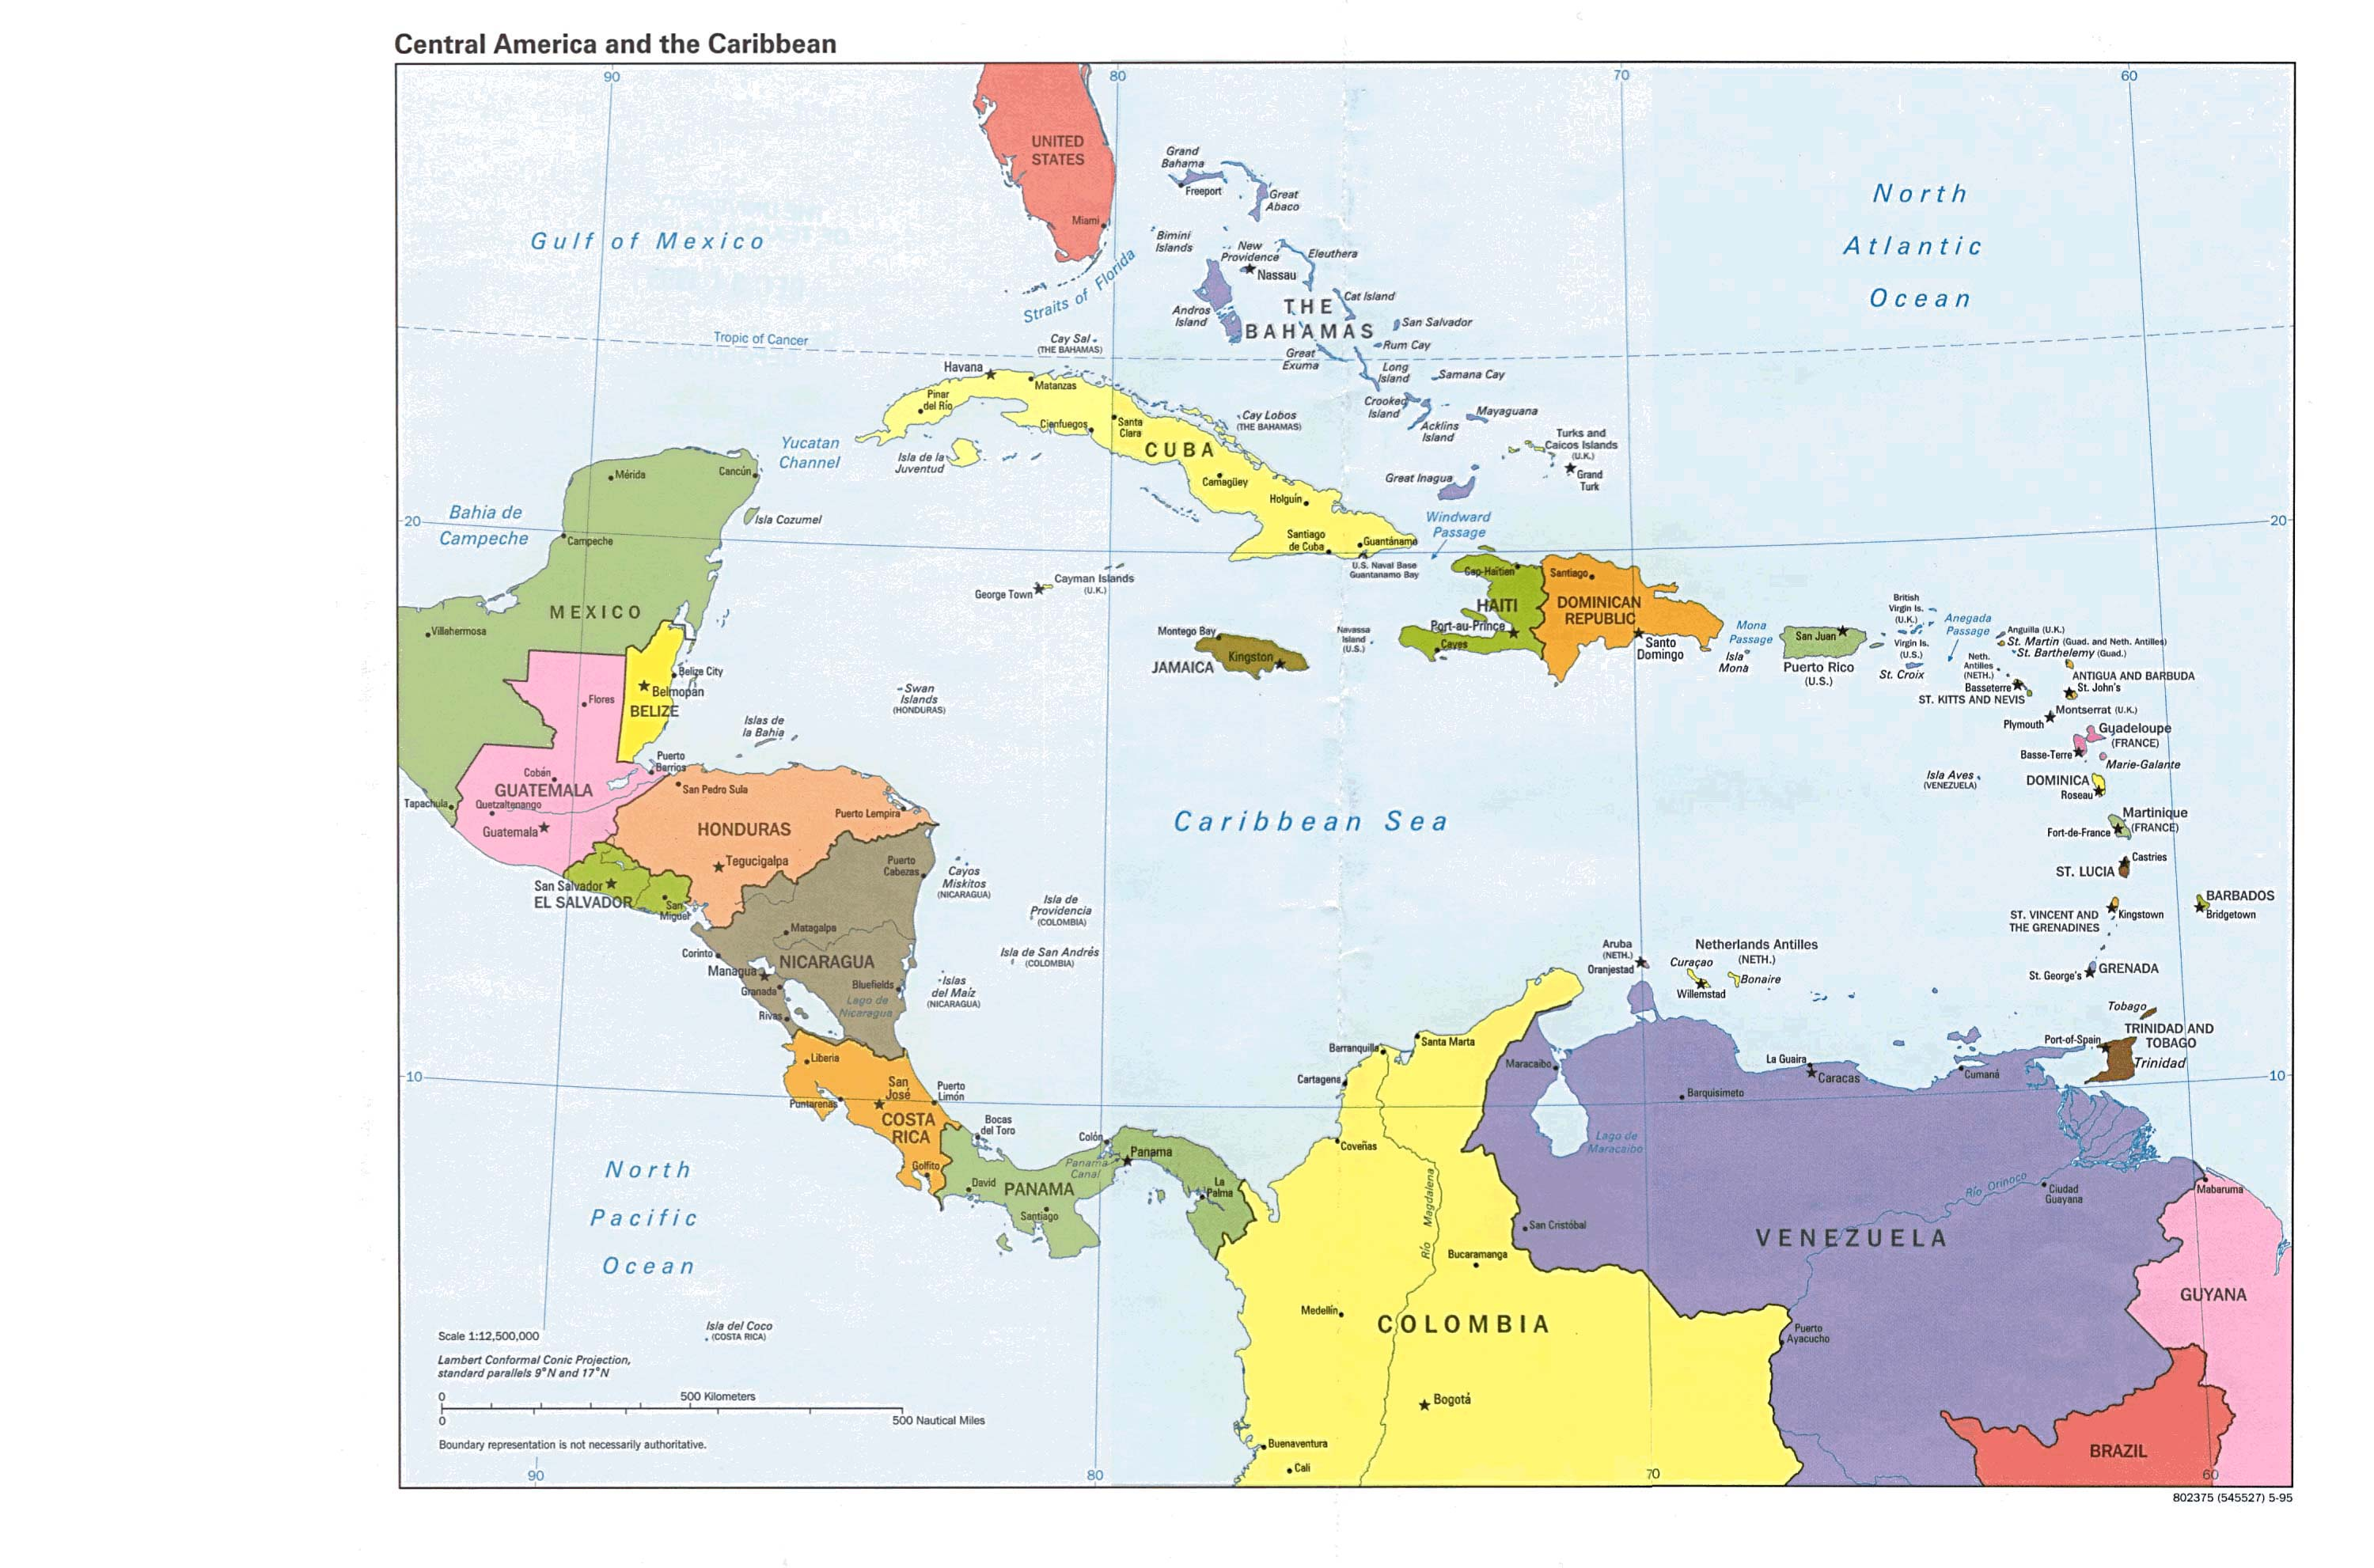 Central America and the Caribbean Political Map 1995 - Full size